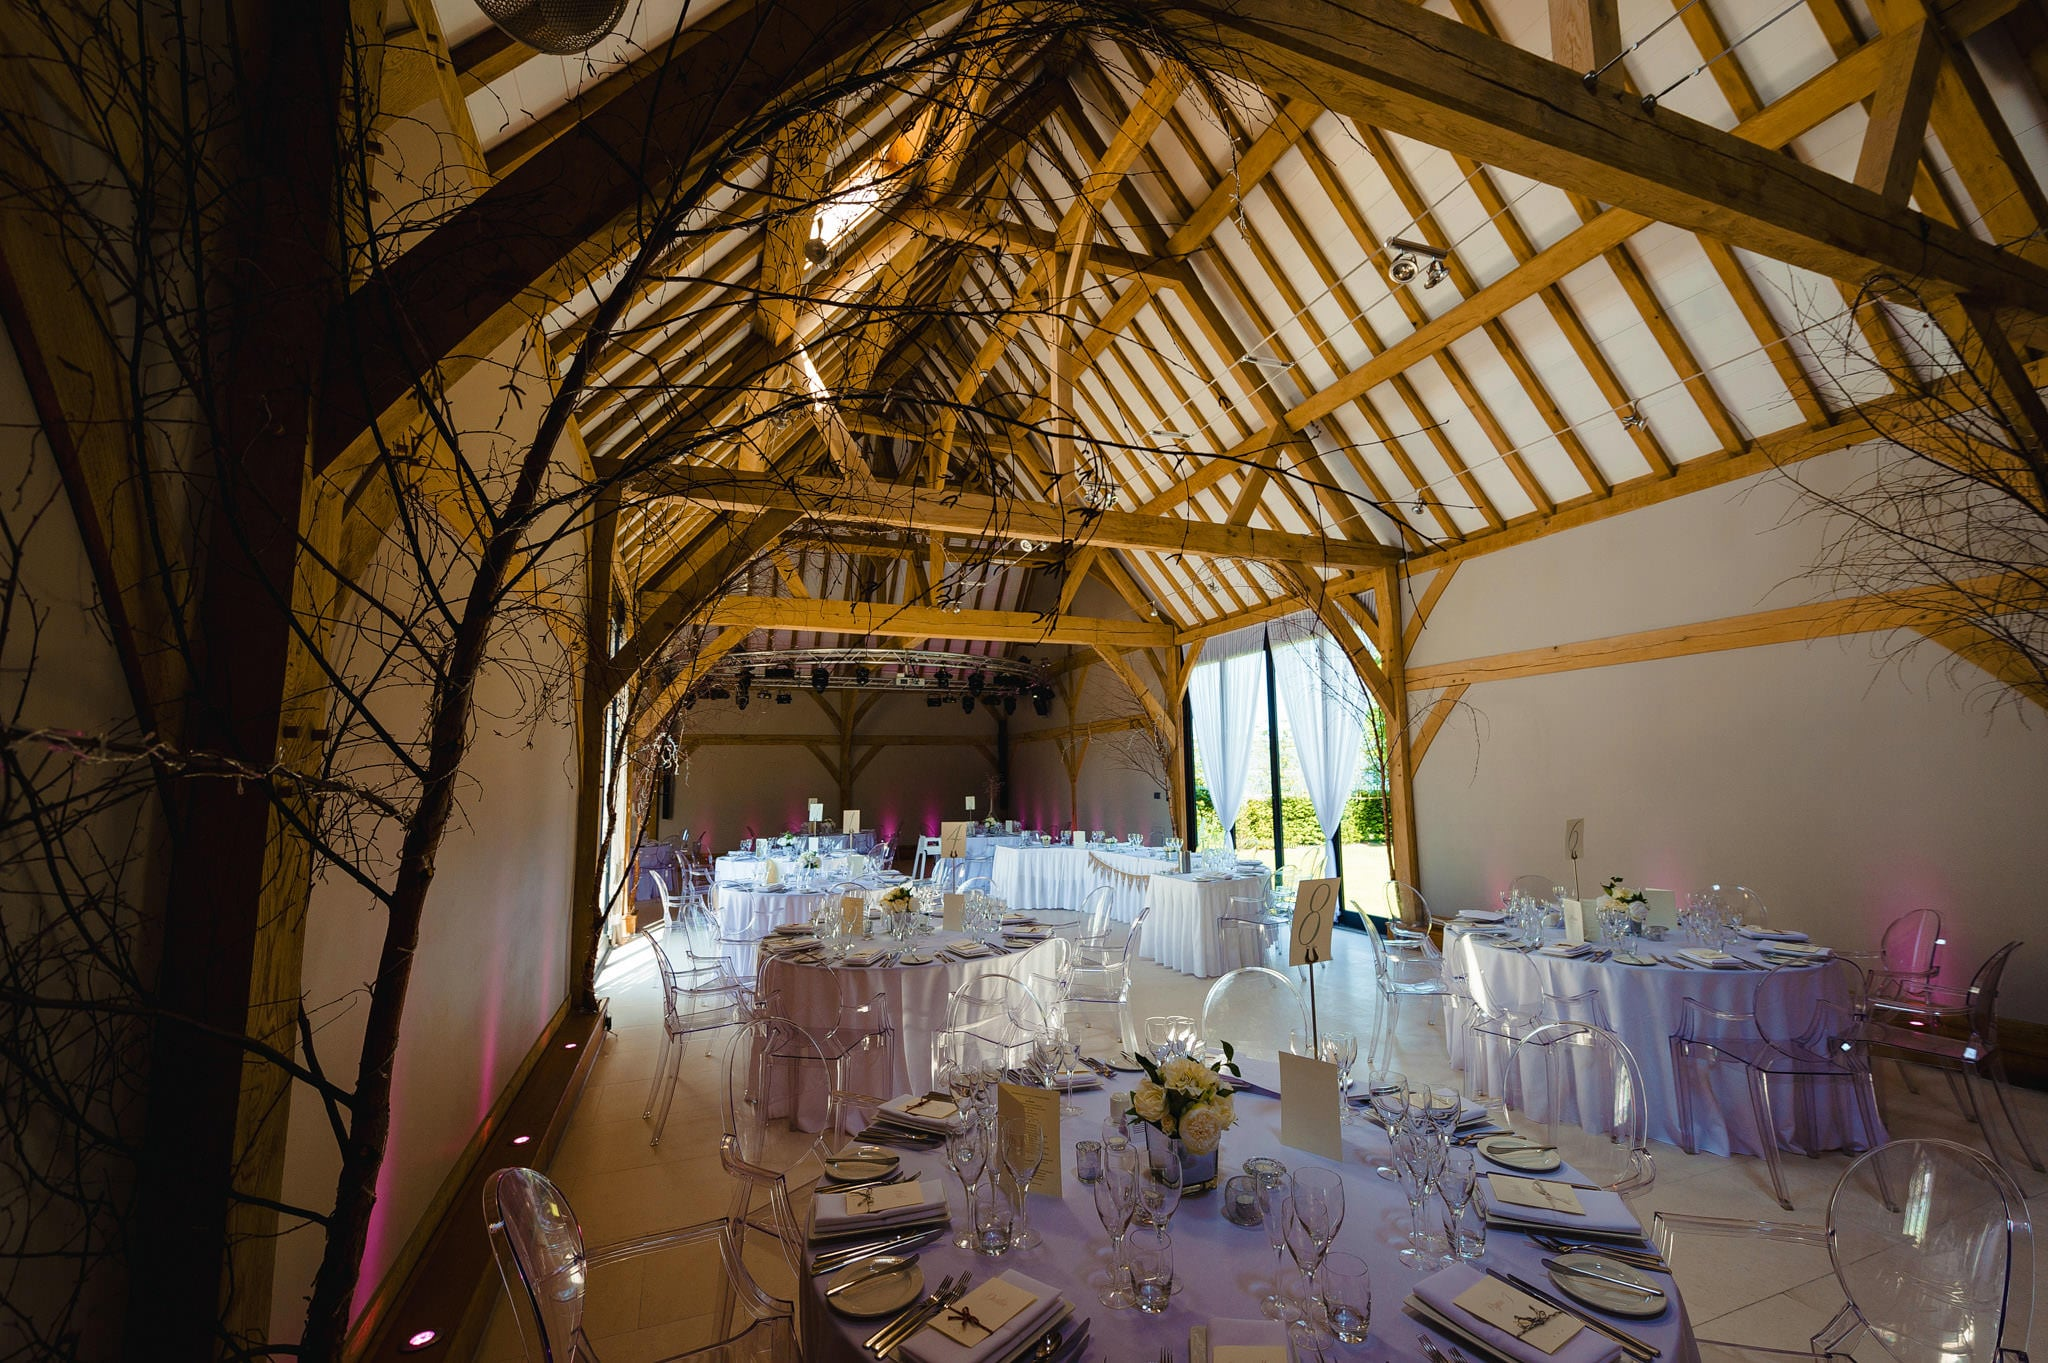 Wedding at Redhouse Barn in Stoke Prior, Worcestershire 3